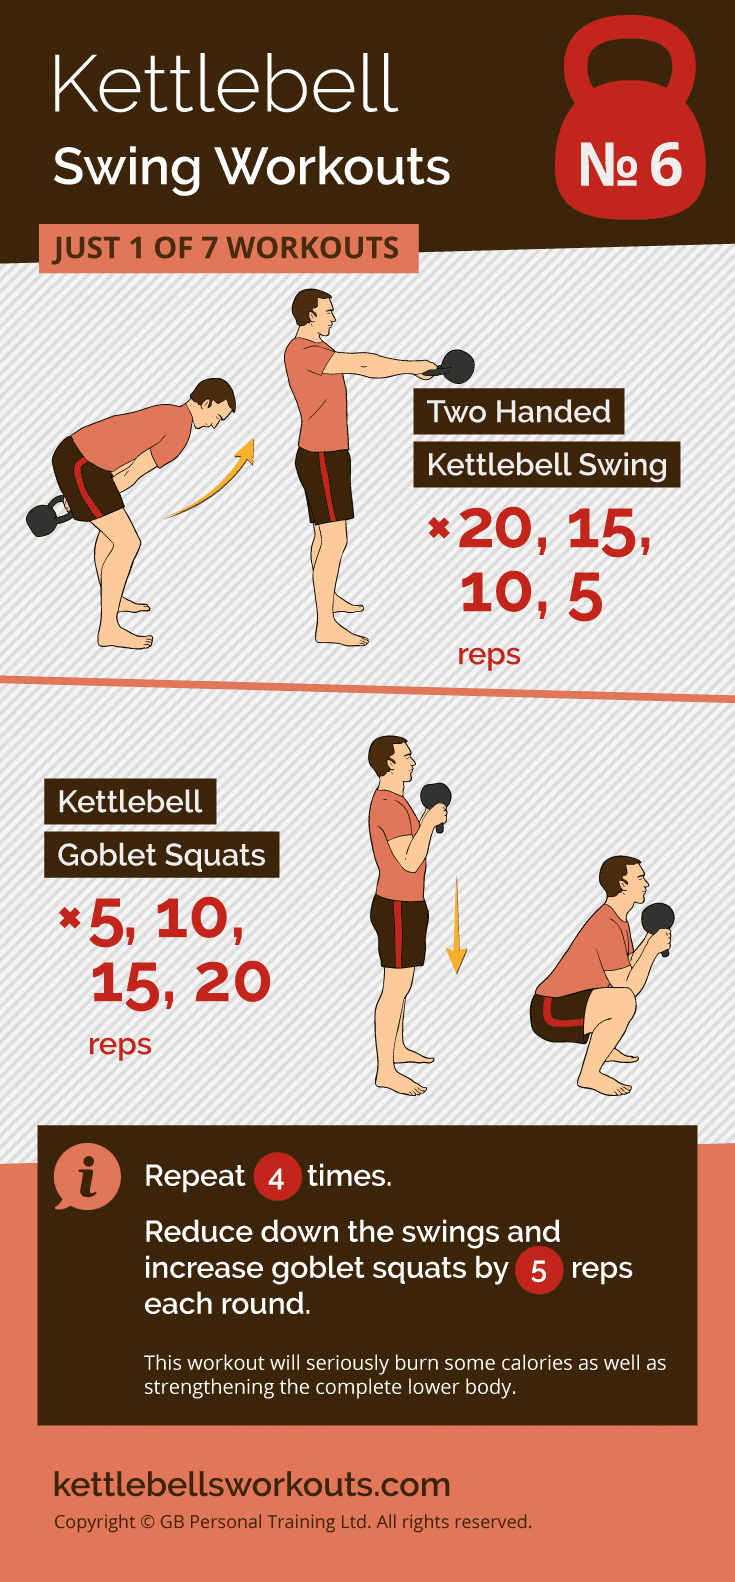 Kettlebell Swing Workout No.6